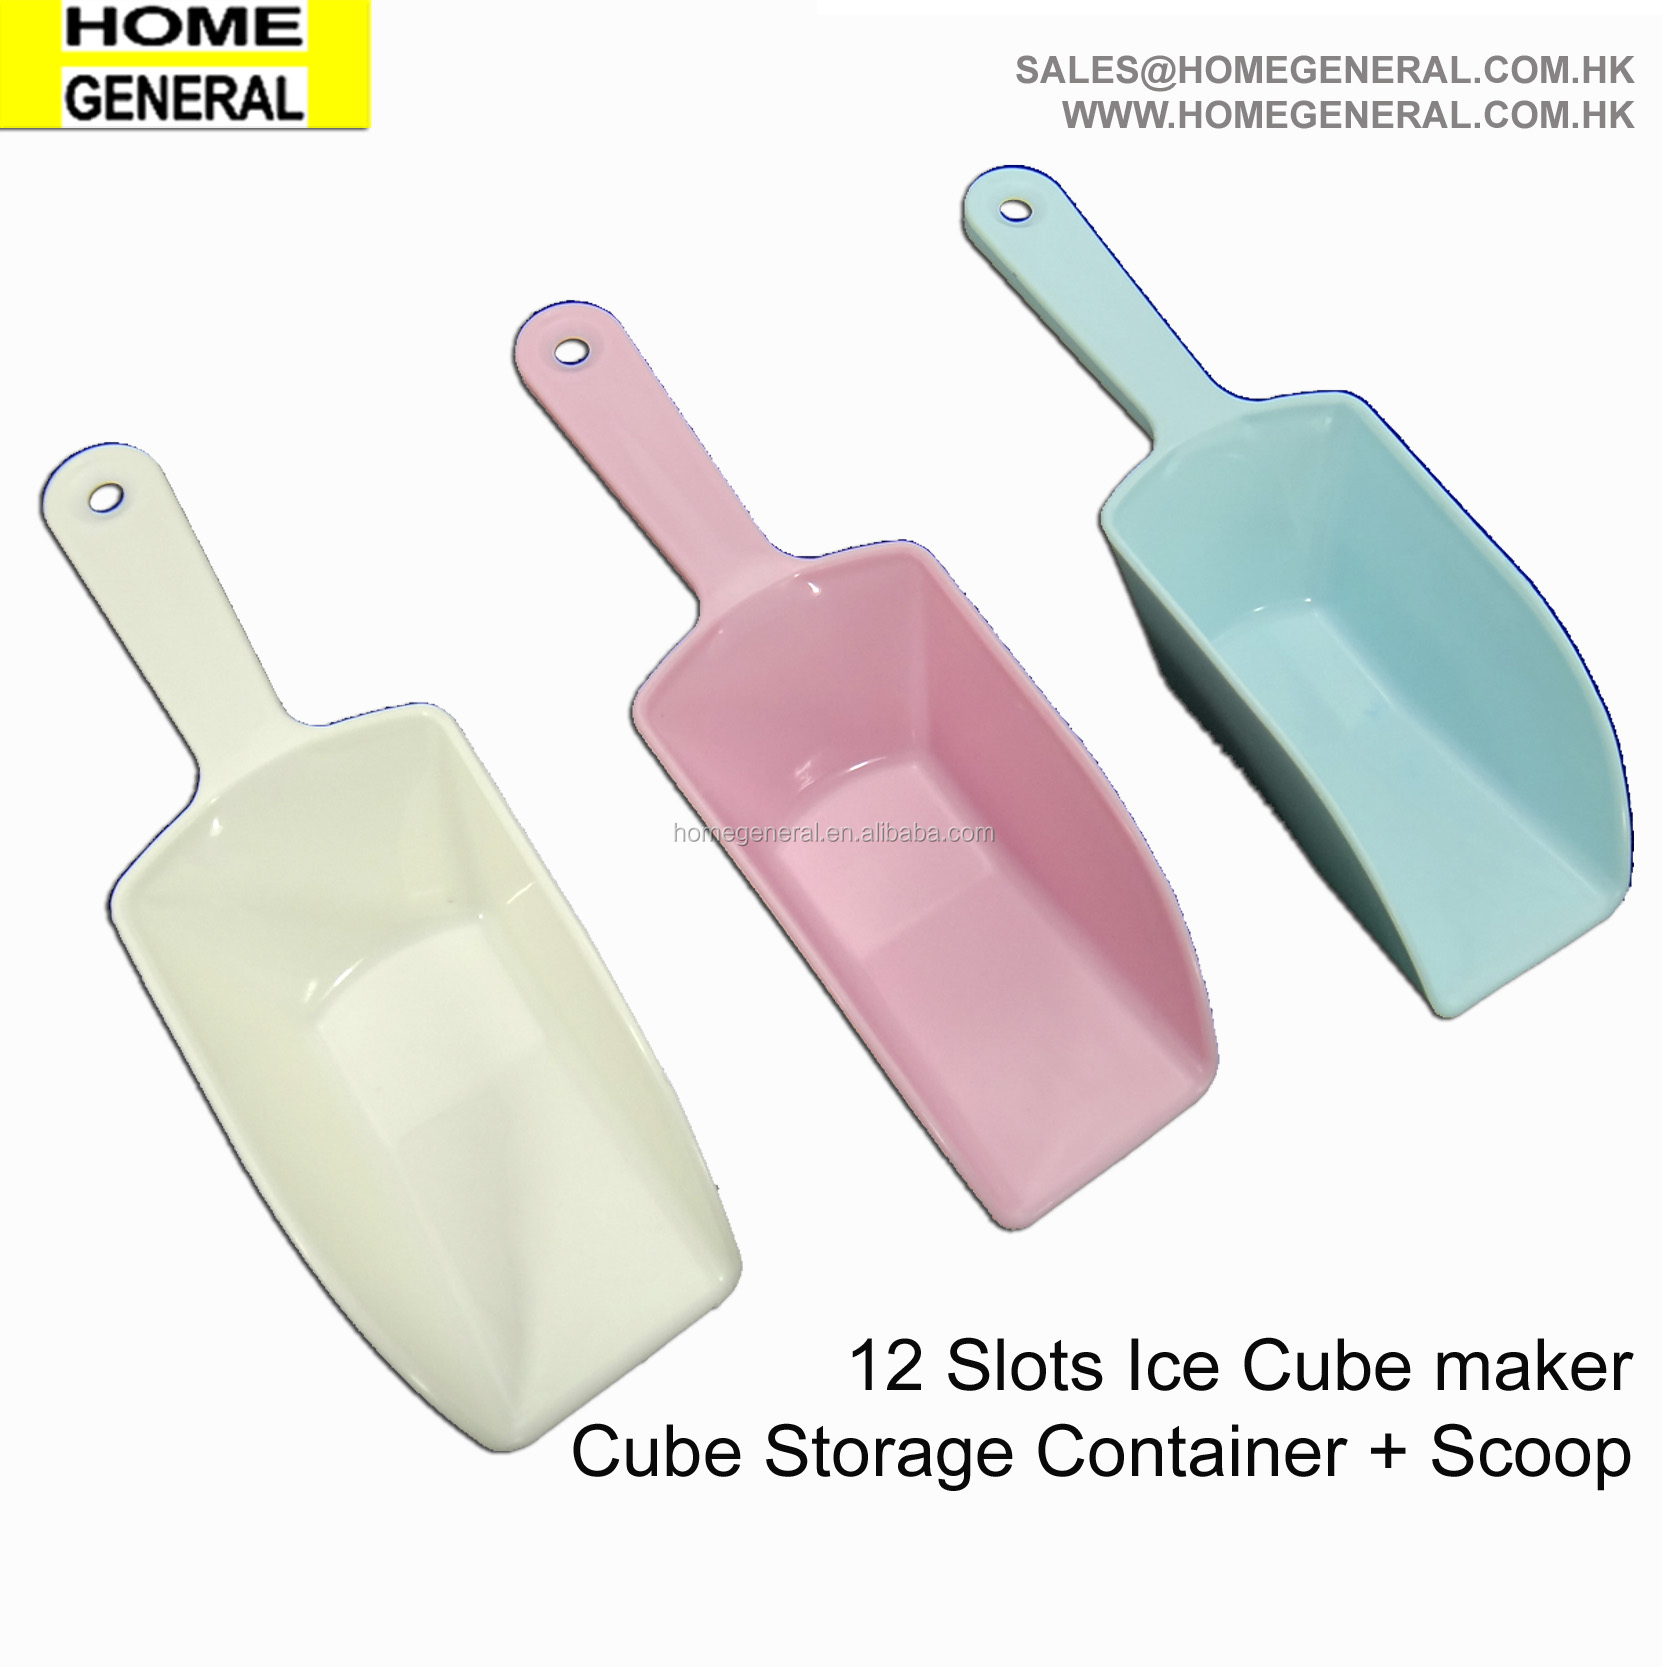 KITCHEN GENERAL ICE CUBE TRAY CONTAINER AND MOLD SET WITH SCOOP